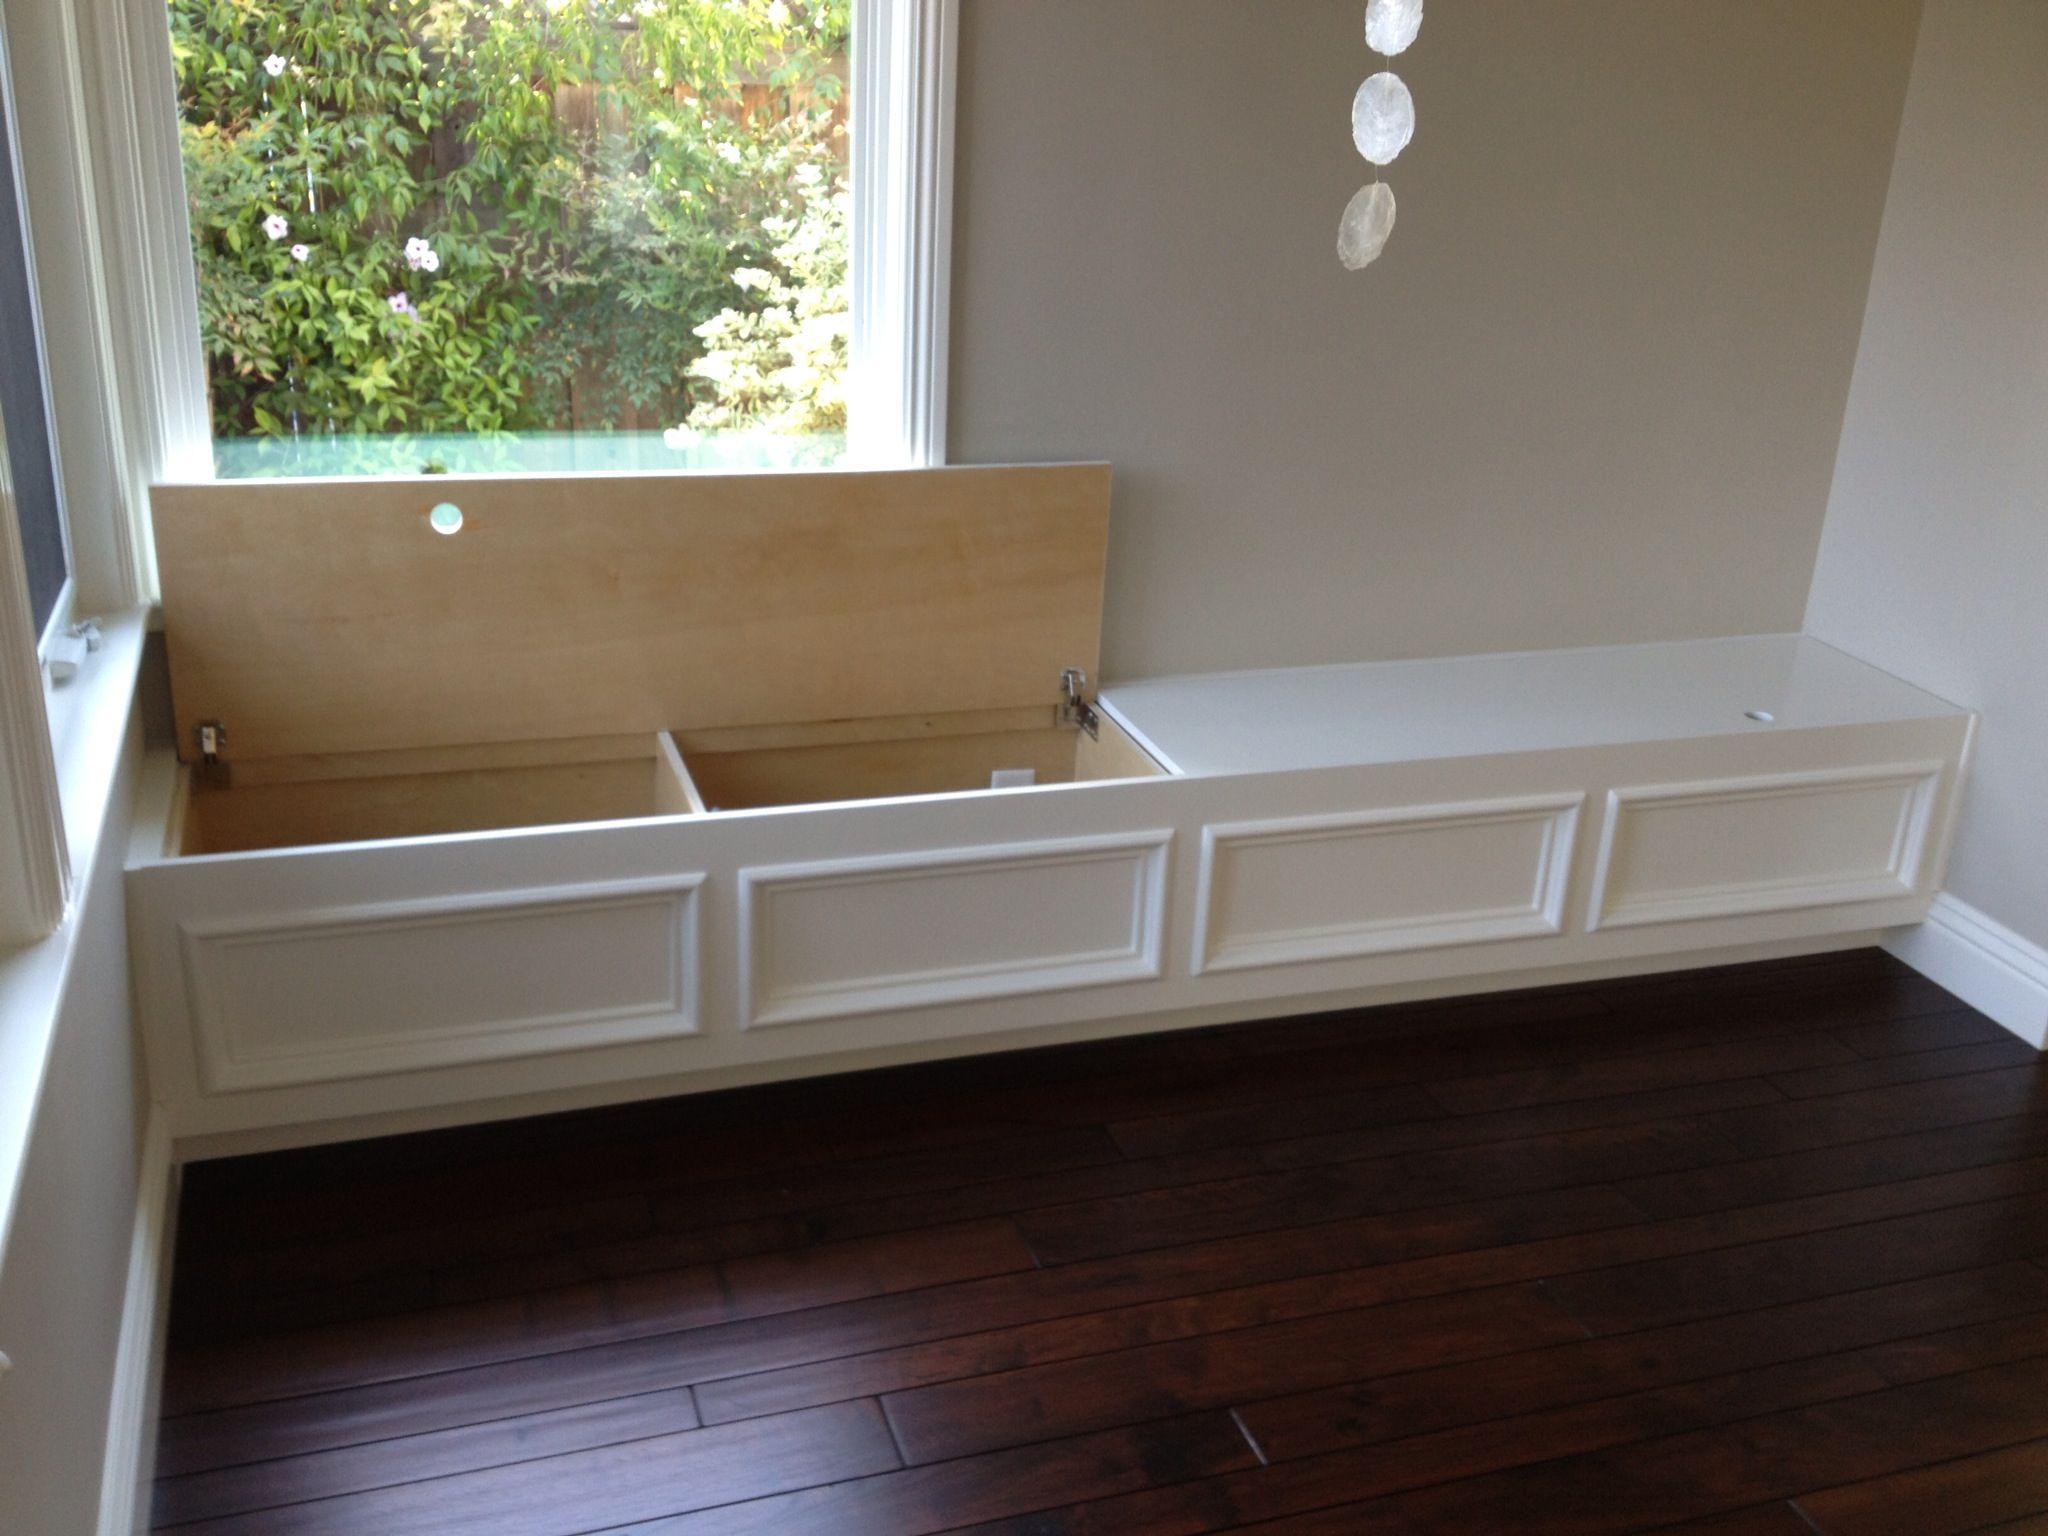 Built In Bench Seat With Storage Put Along Wall In Family Room For Extra Seating When I Move